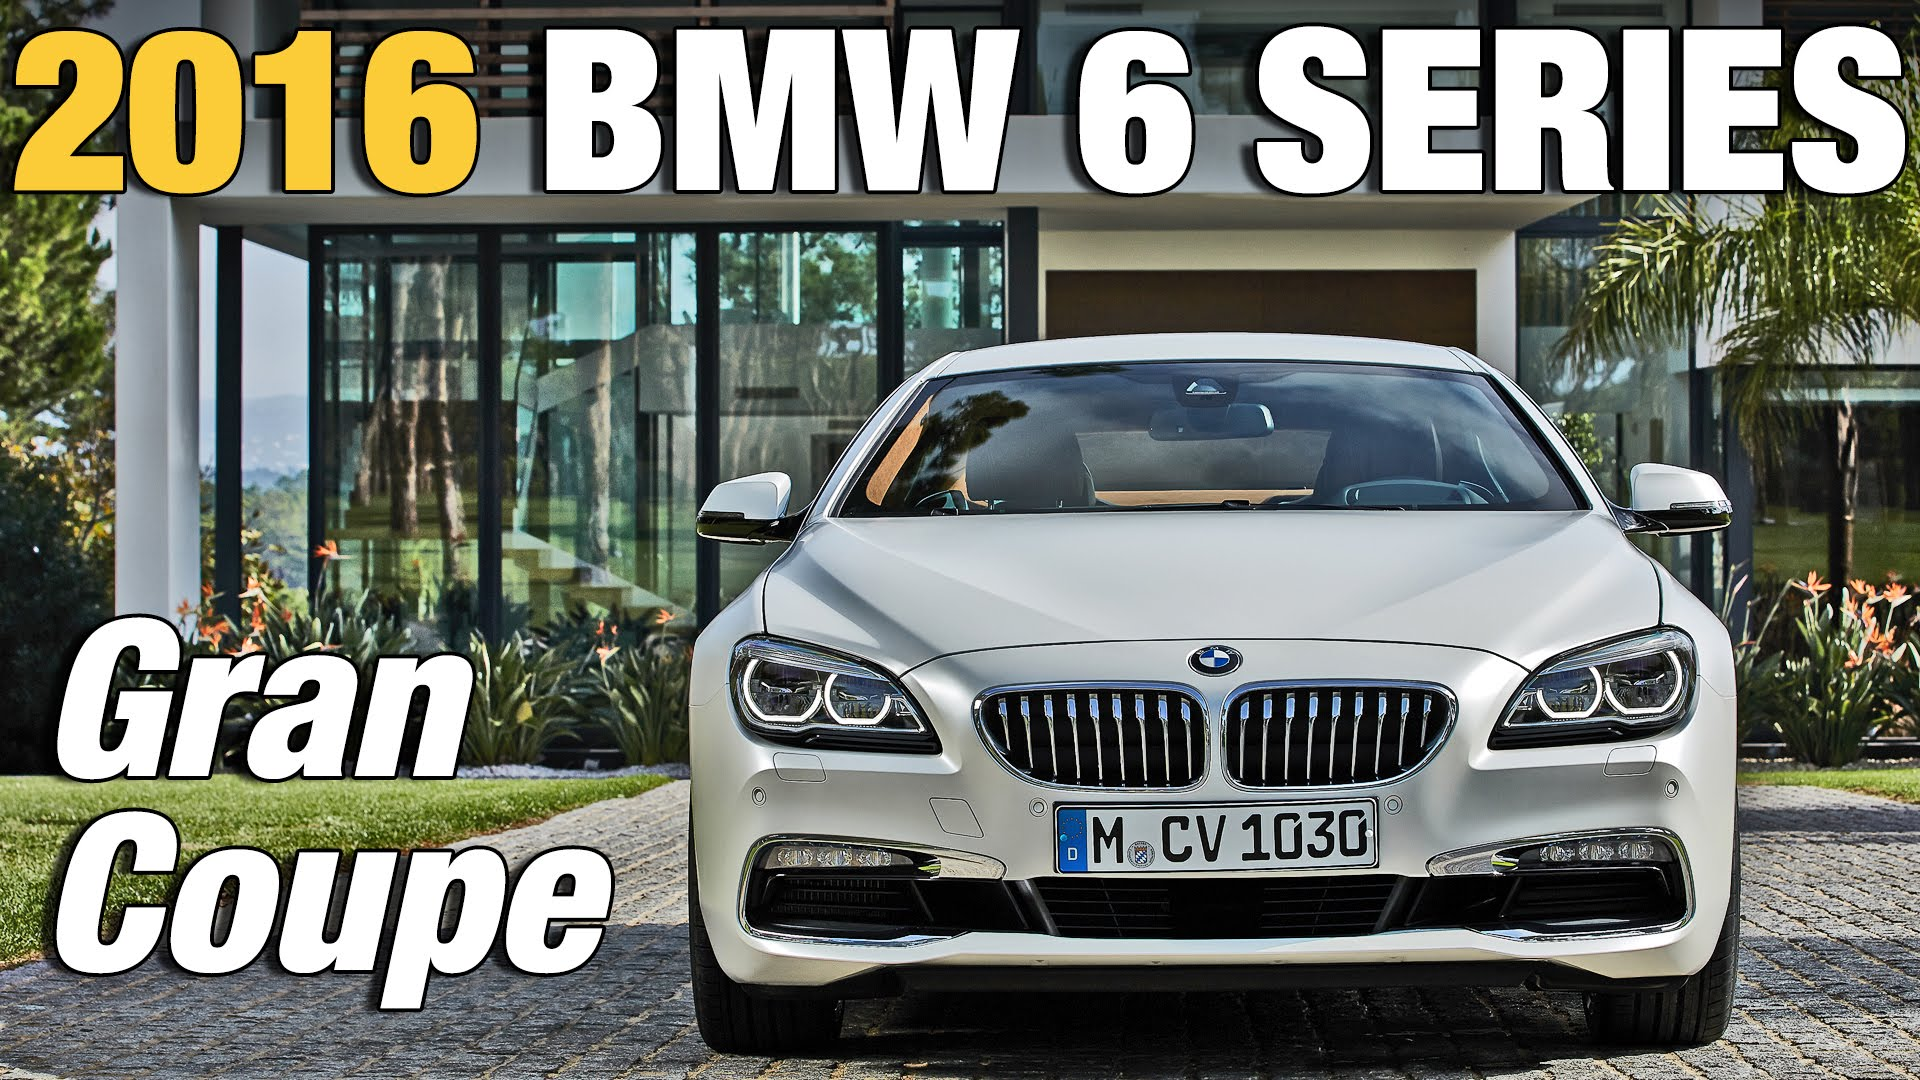 2016 Bmw 6 Series Gran Coupe #4